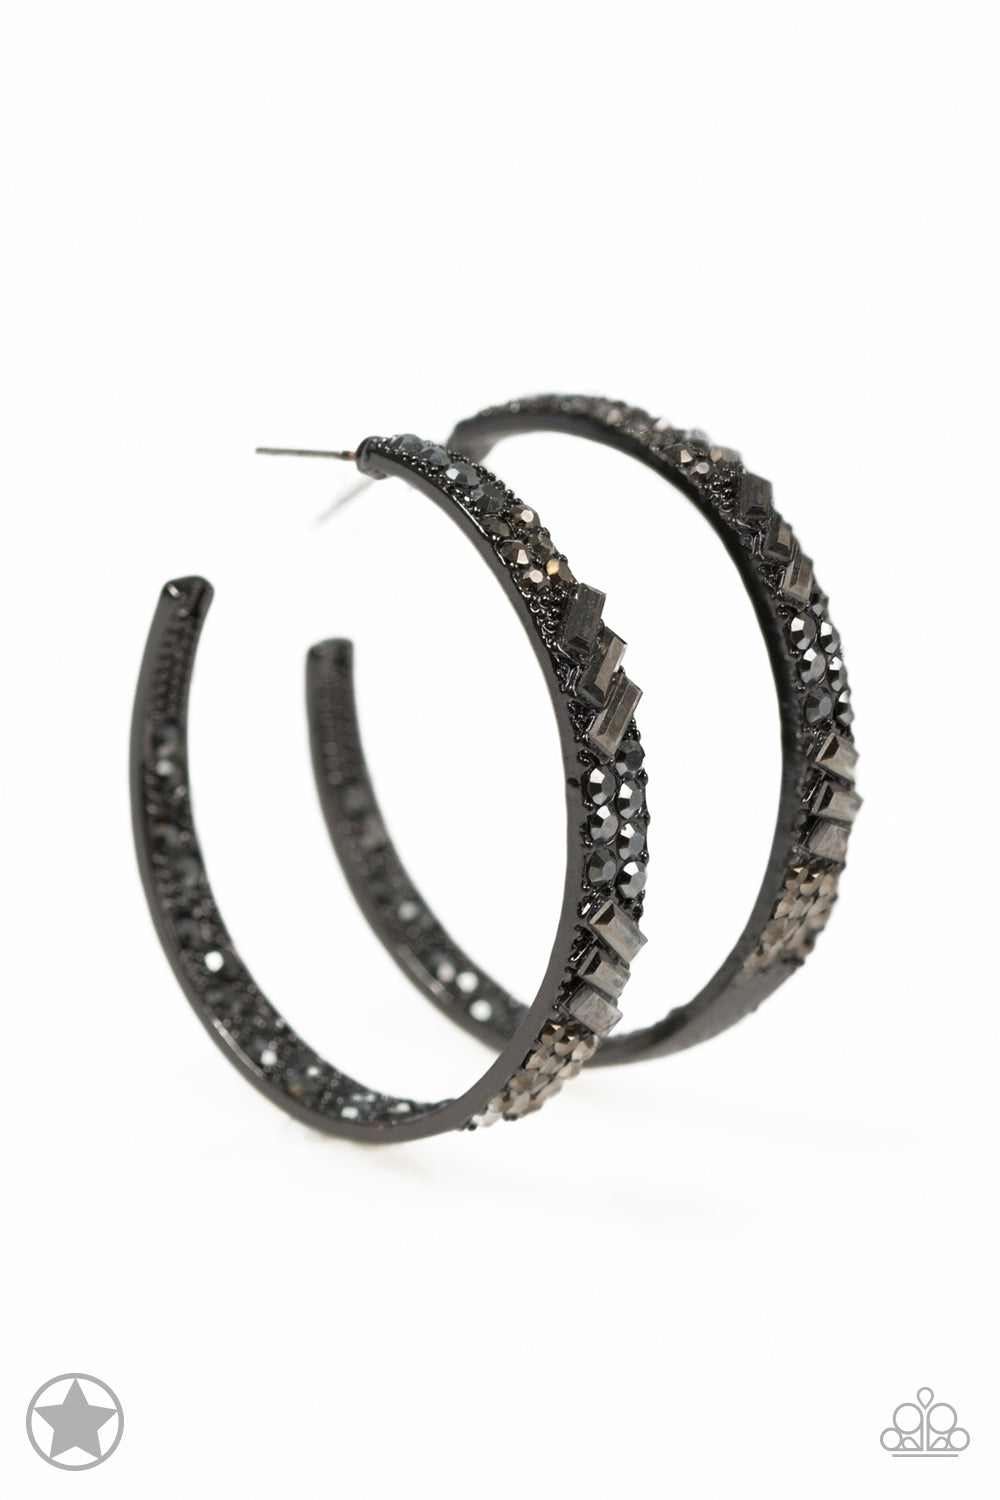 Paparazzi GLITZY By Association - Black Hoop Earrings